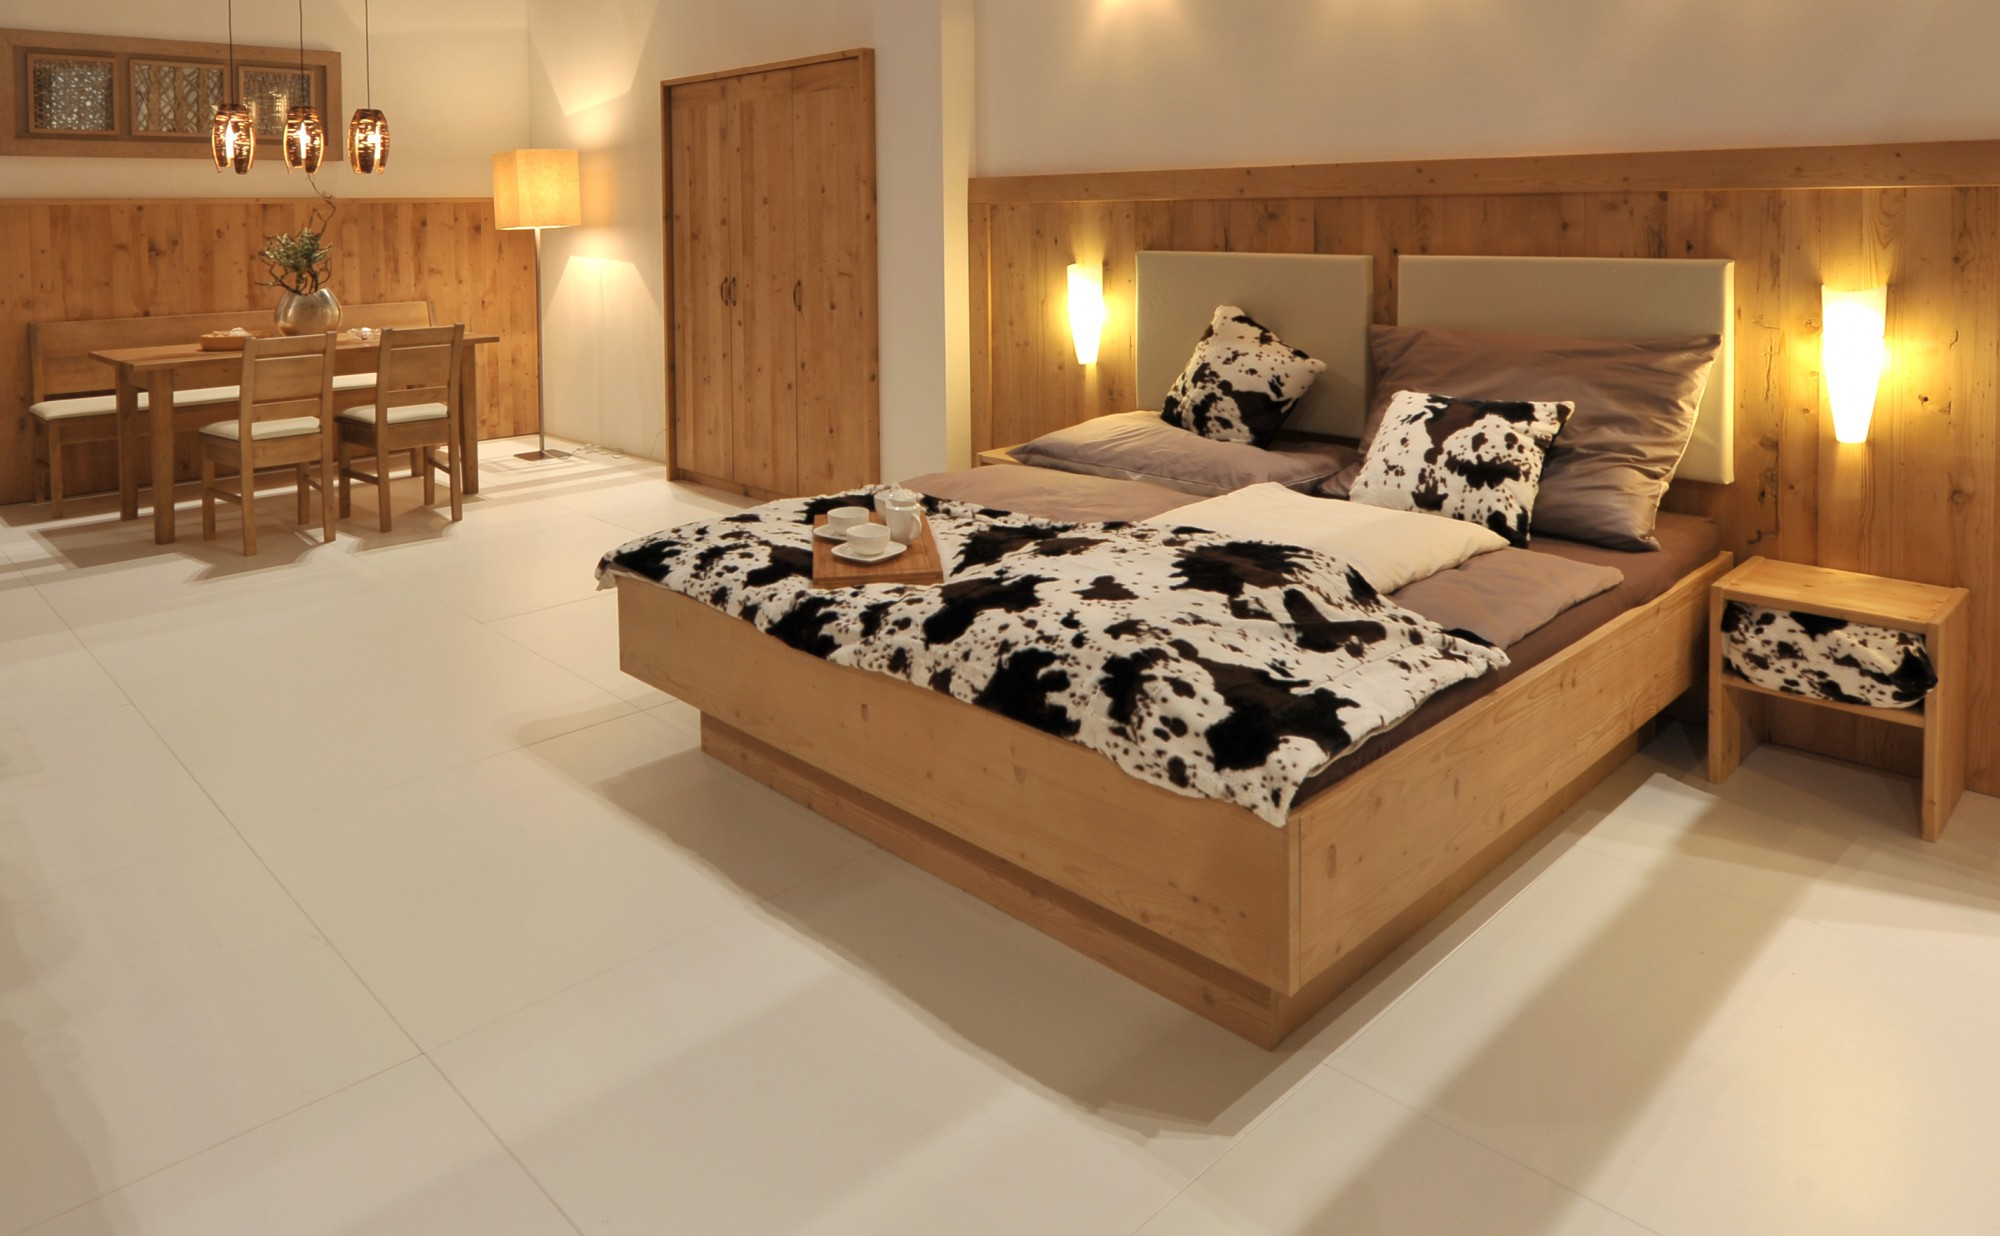 hotelzimmer k ssen aus massivem altholz gewachst m bel. Black Bedroom Furniture Sets. Home Design Ideas